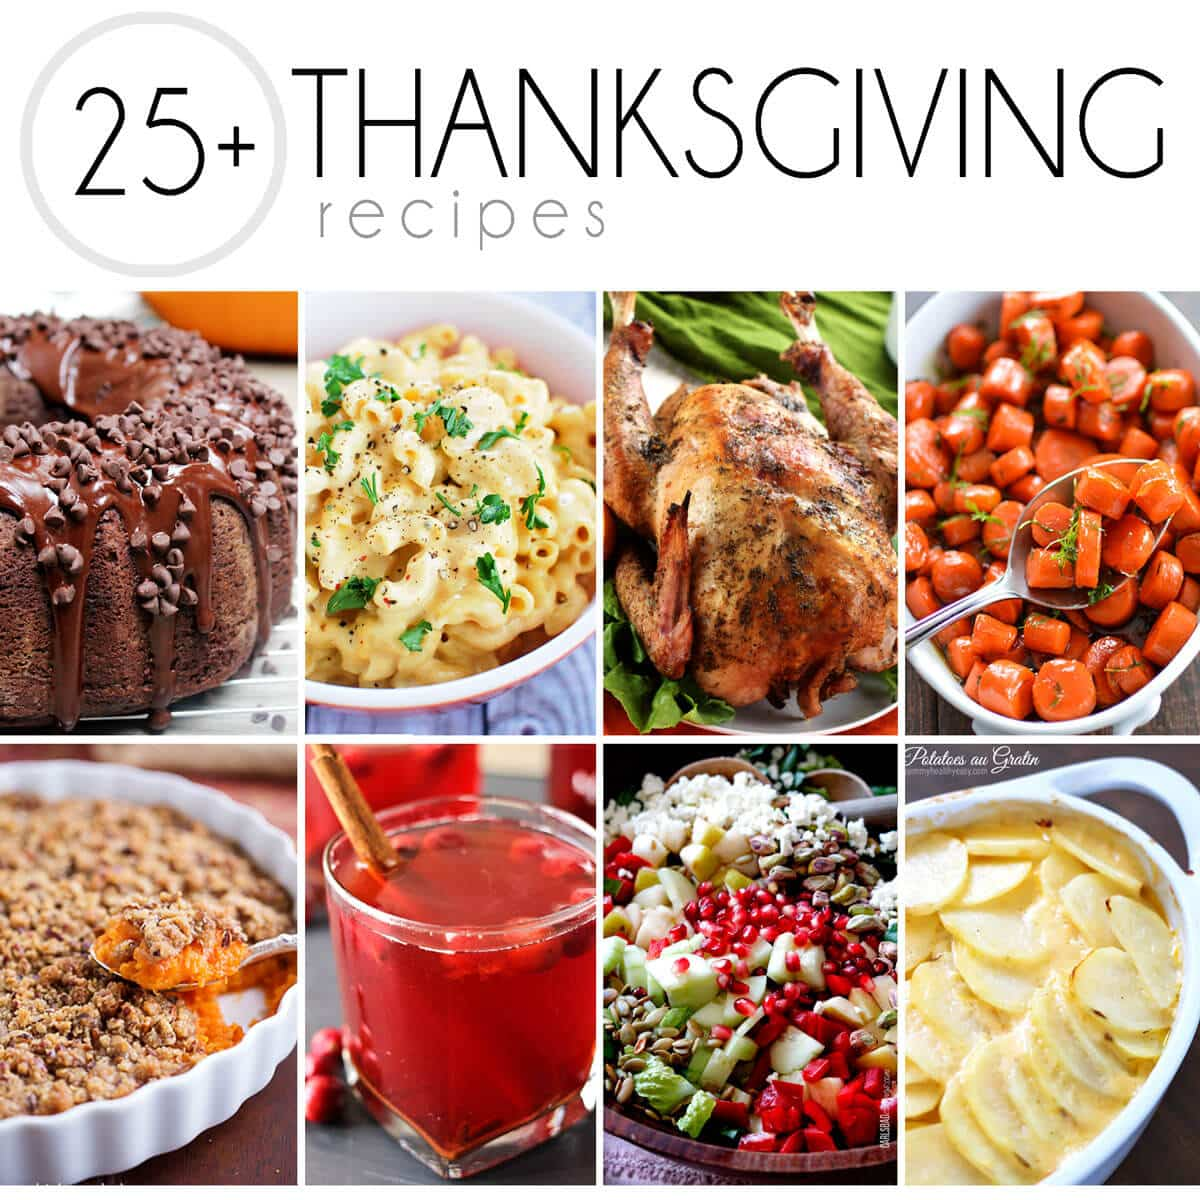 amazing collection of thanksgiving recipes from top food bloggers